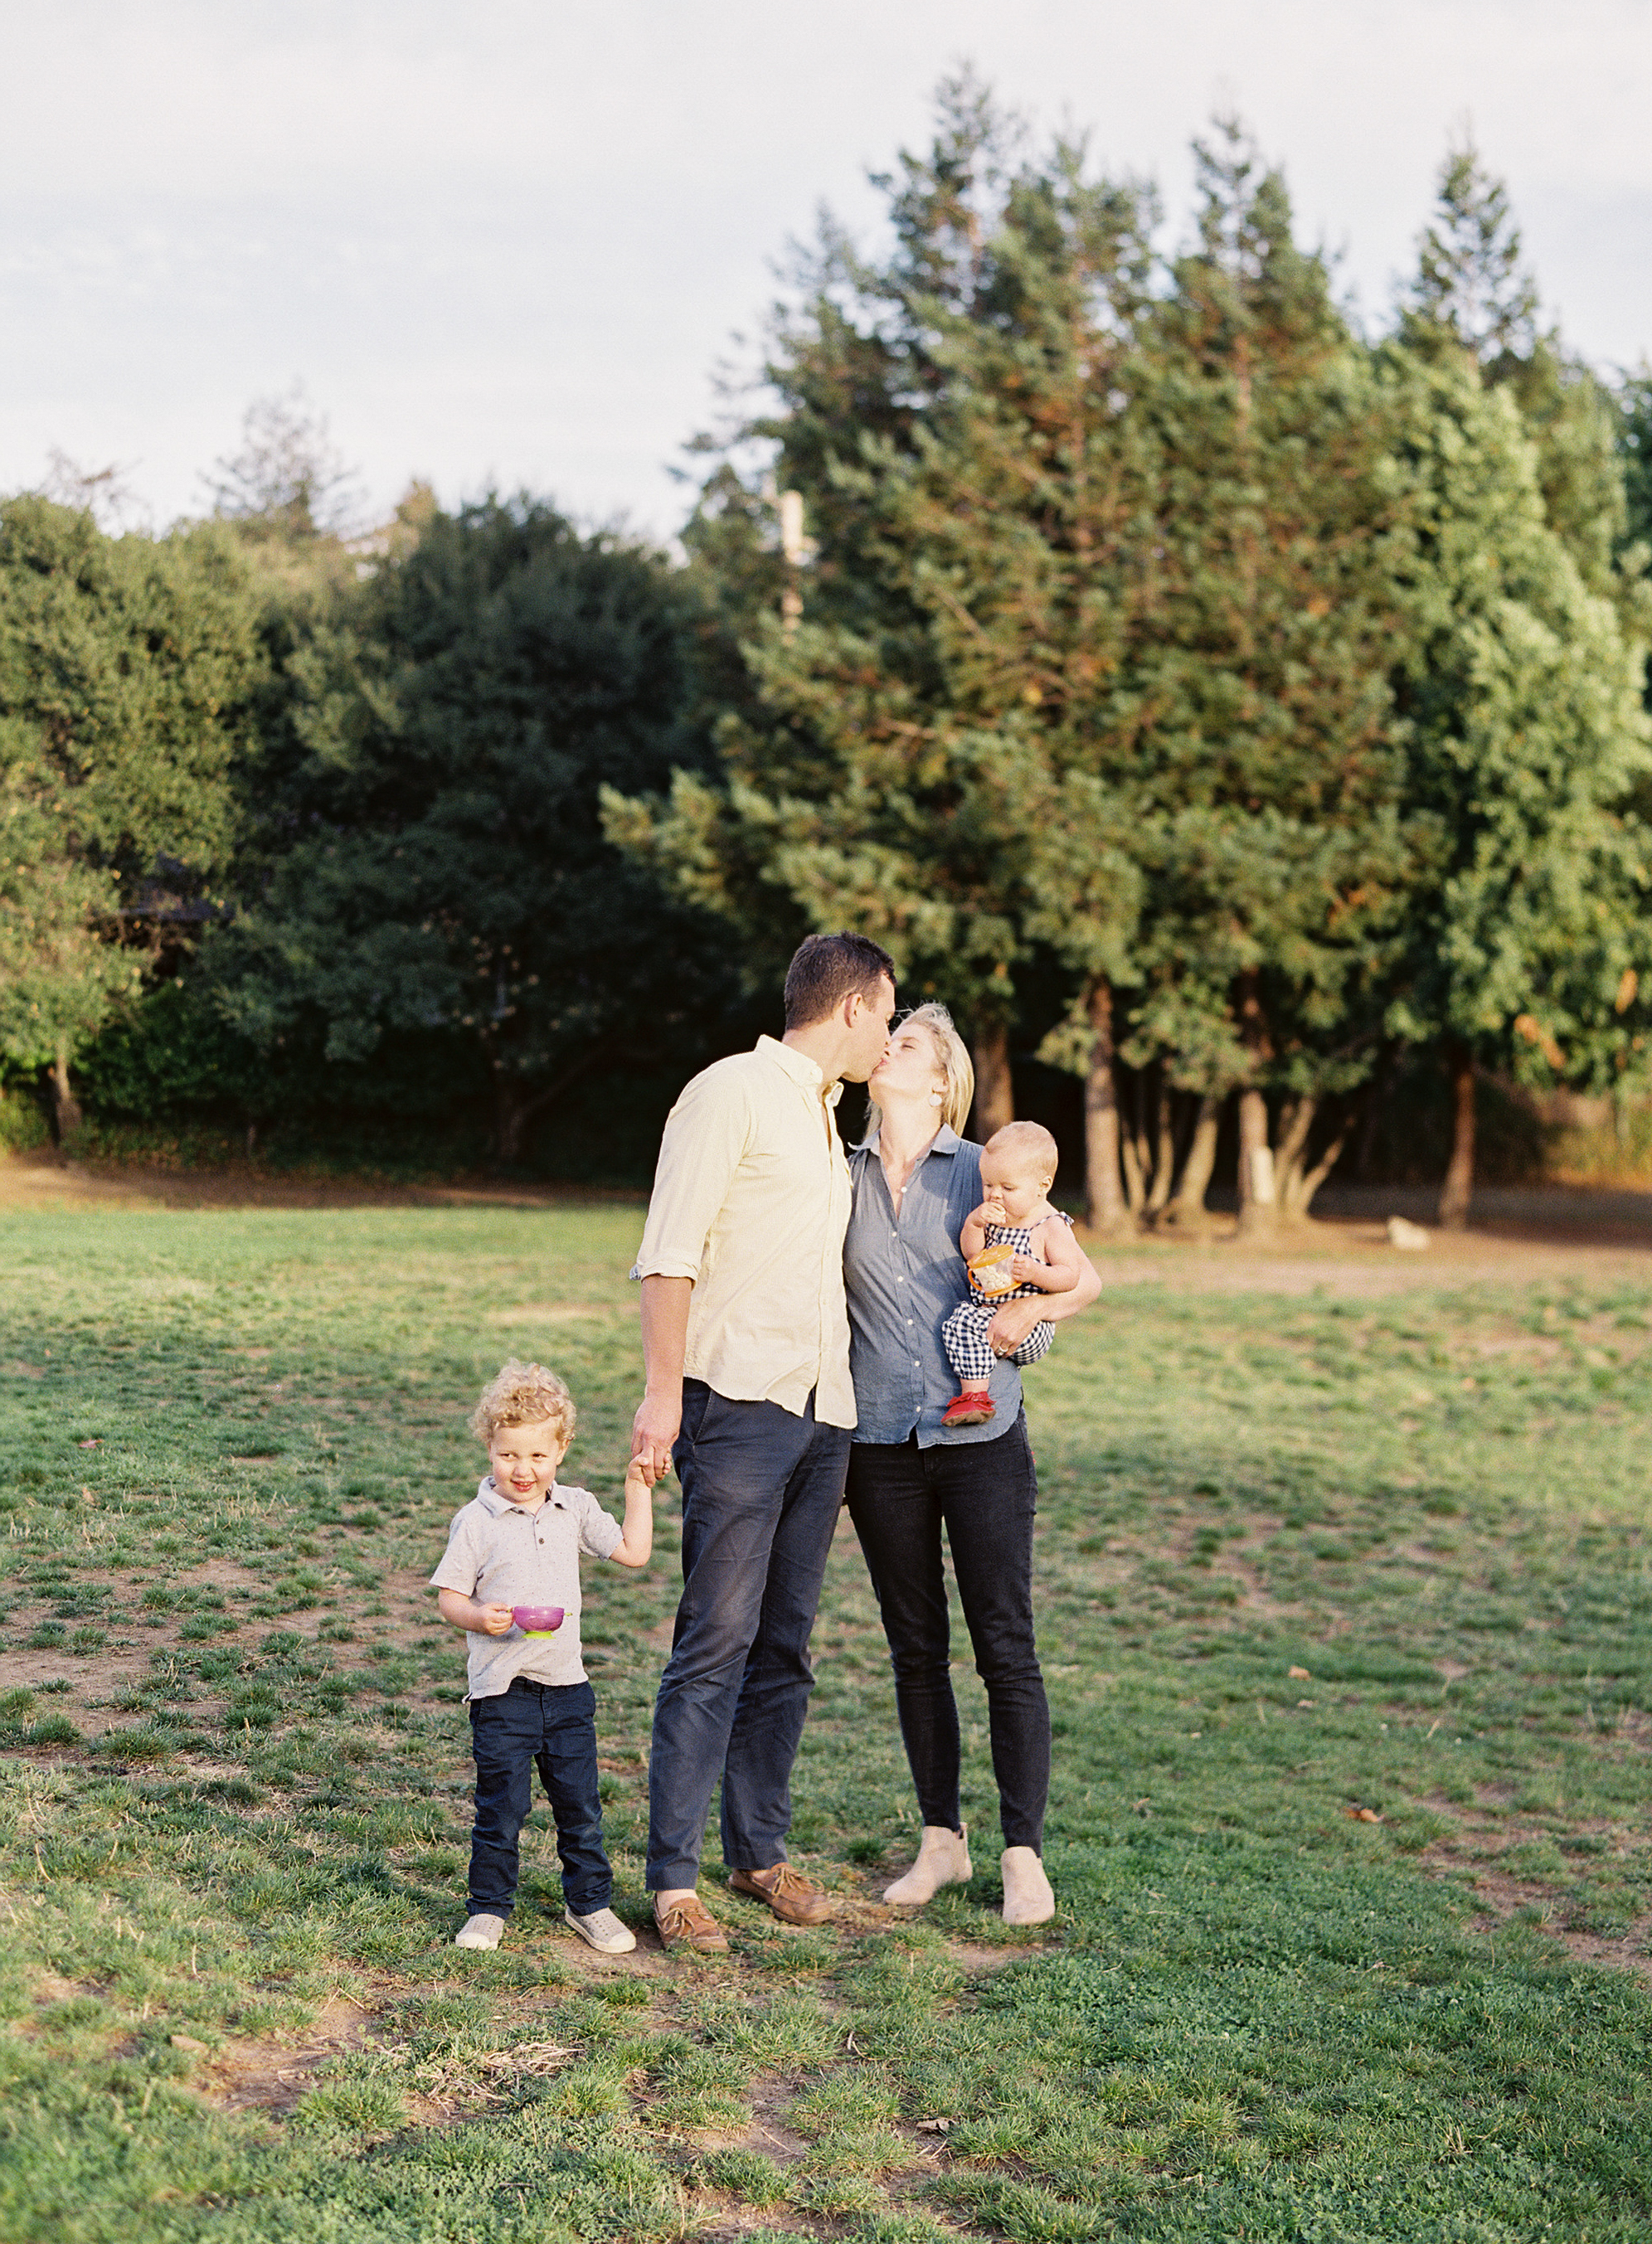 Meghan Mehan Photography - San Francisco Newborn and Family Photographer 035.jpg